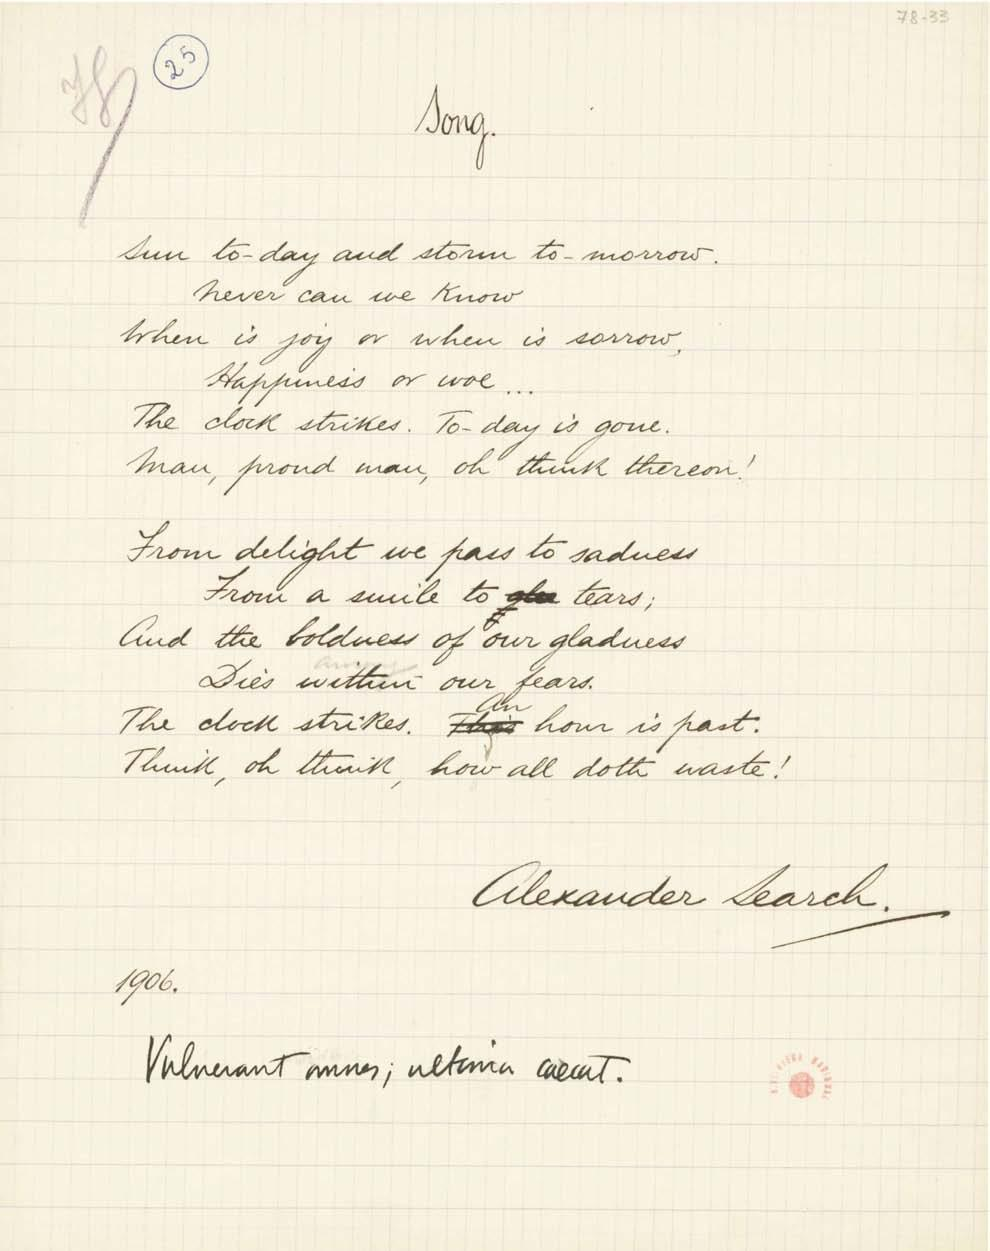 3.4. [78-33 r ]. Dated 1906. Written on grid paper in black ink, with emendations both in black ink and in pencil, bearing the signature Alexander Search.